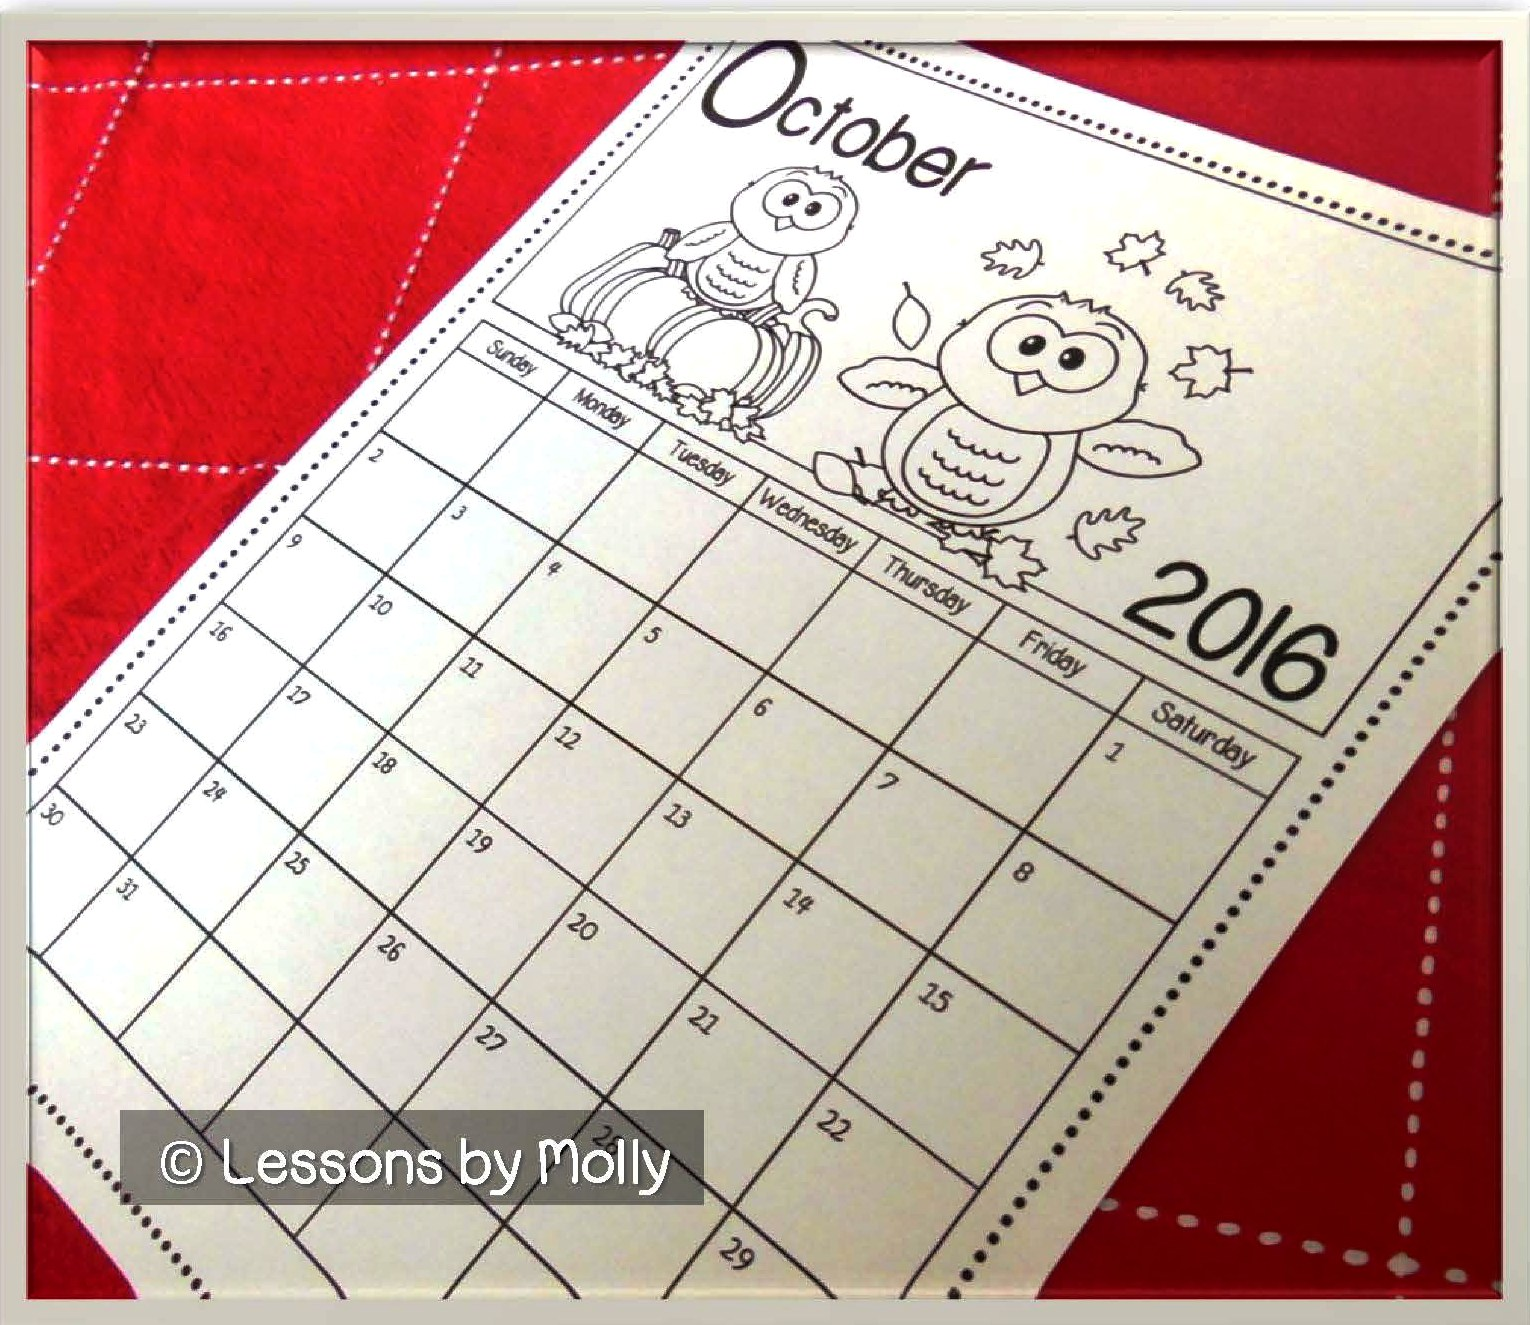 Calener October: Lessons By Molly: Free School Calendar